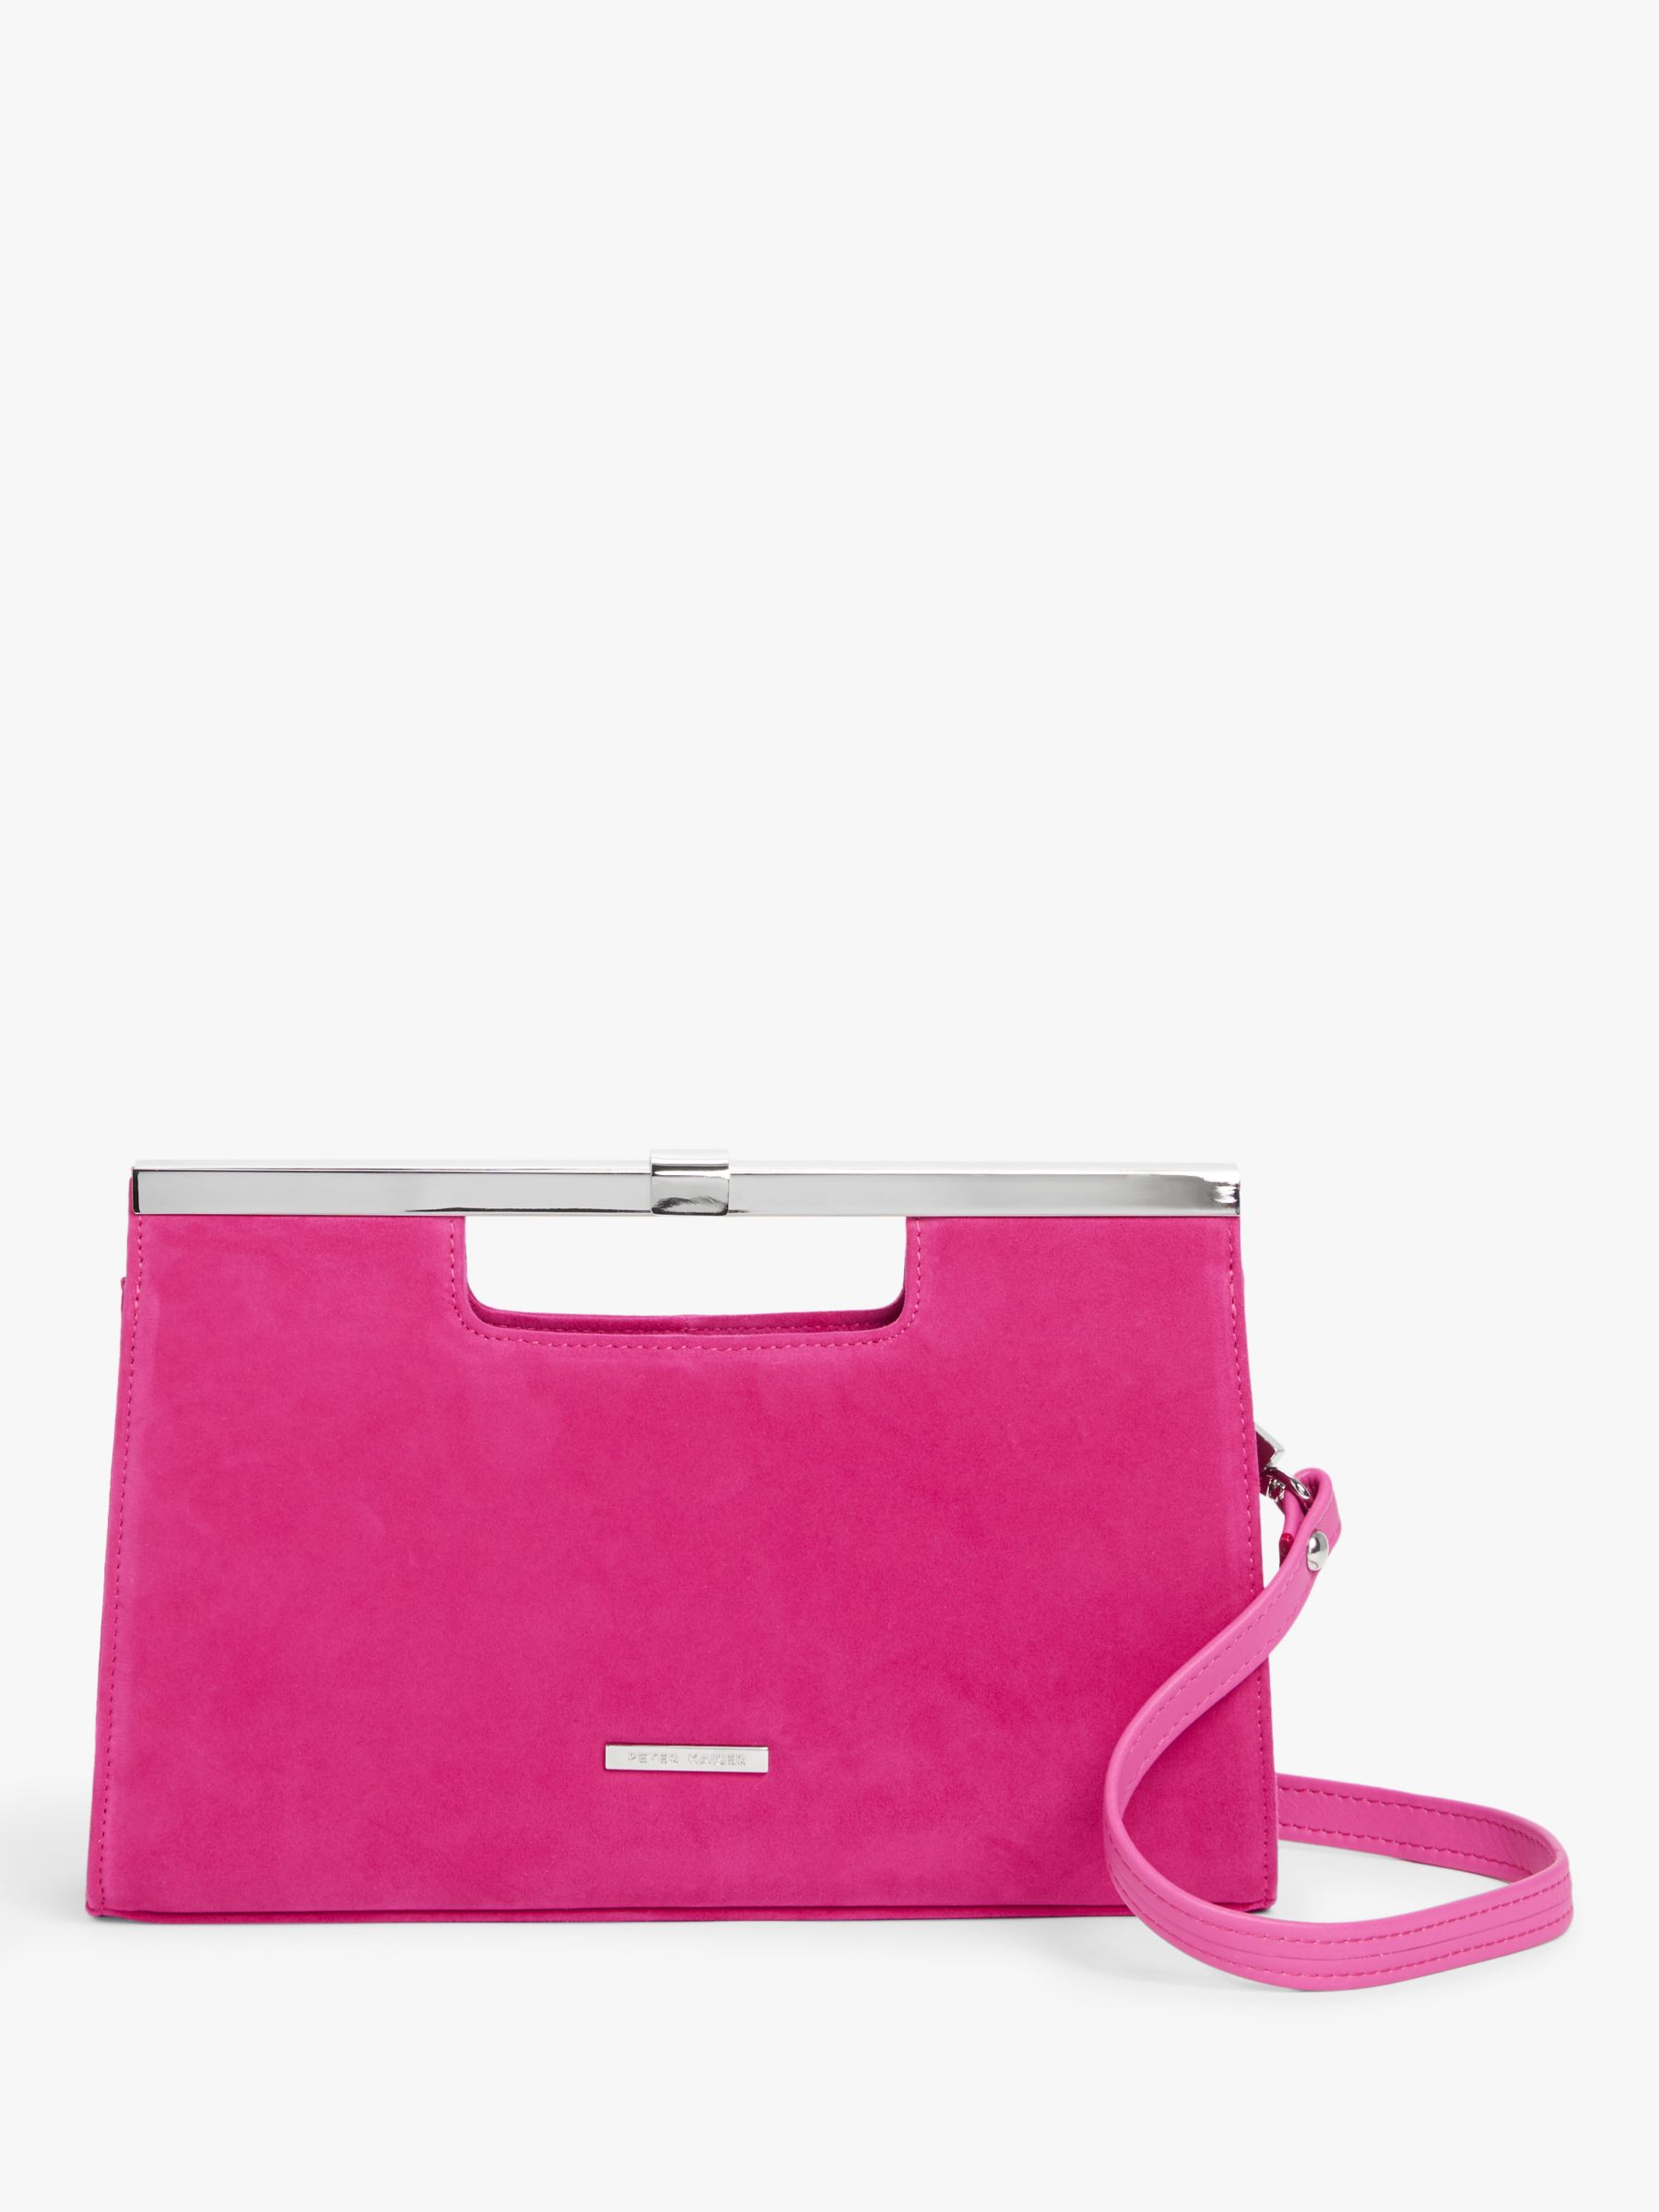 Peter Kaiser Peter Kaiser Wye Suede Clutch Bag, Berry